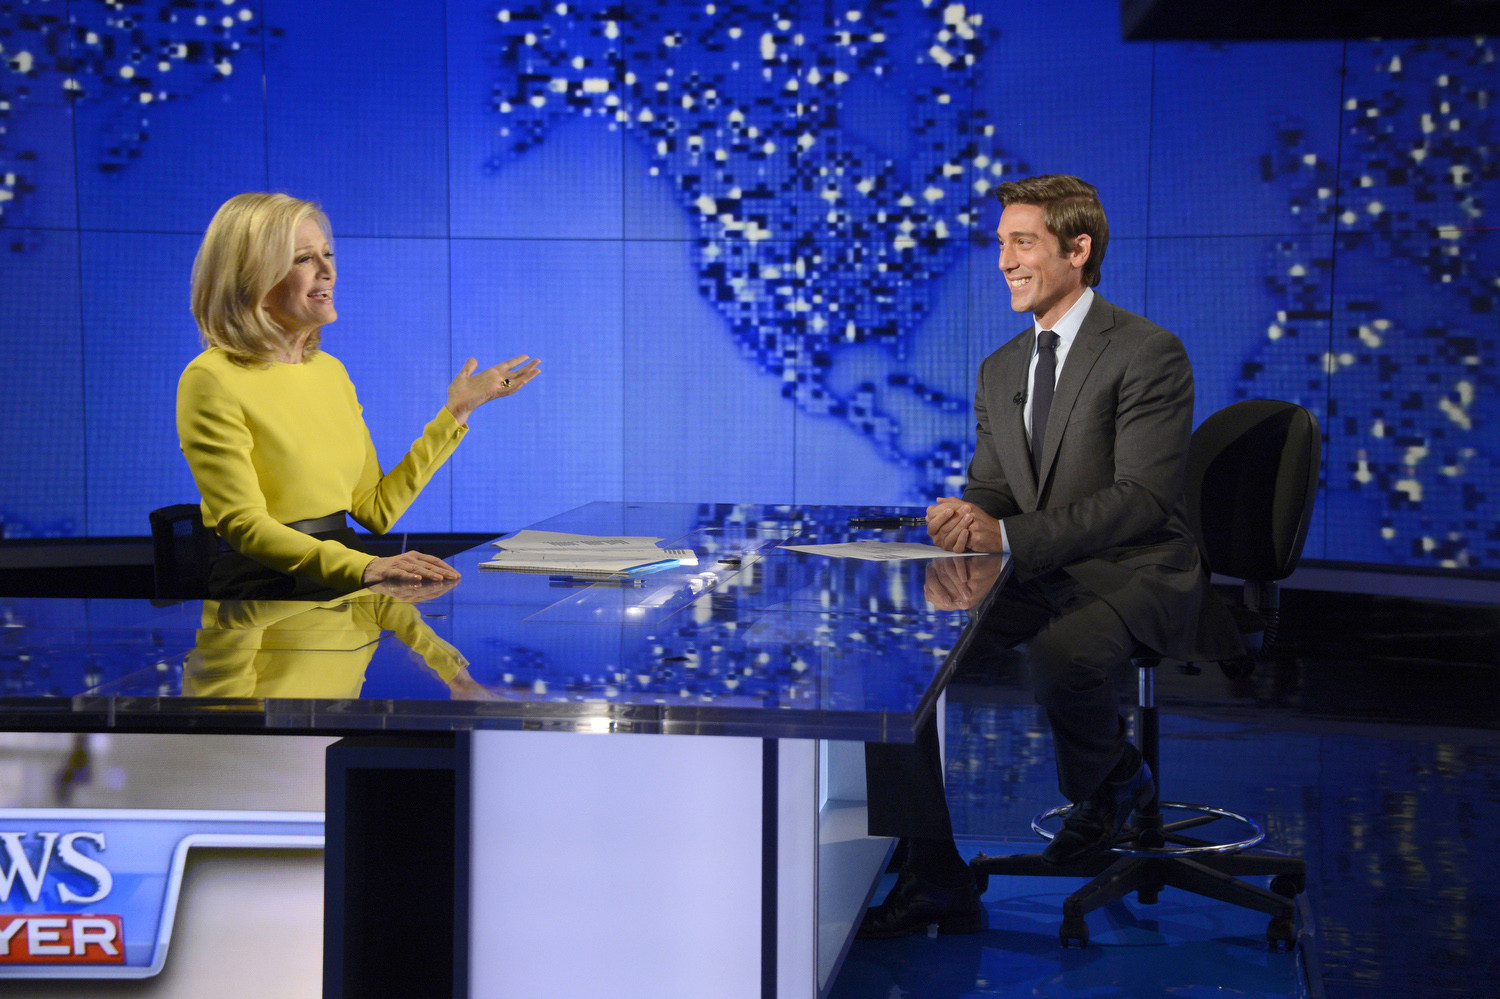 ABC News Picture: David Muir Leads 'ABC World News Tonight' To 1st Ratings